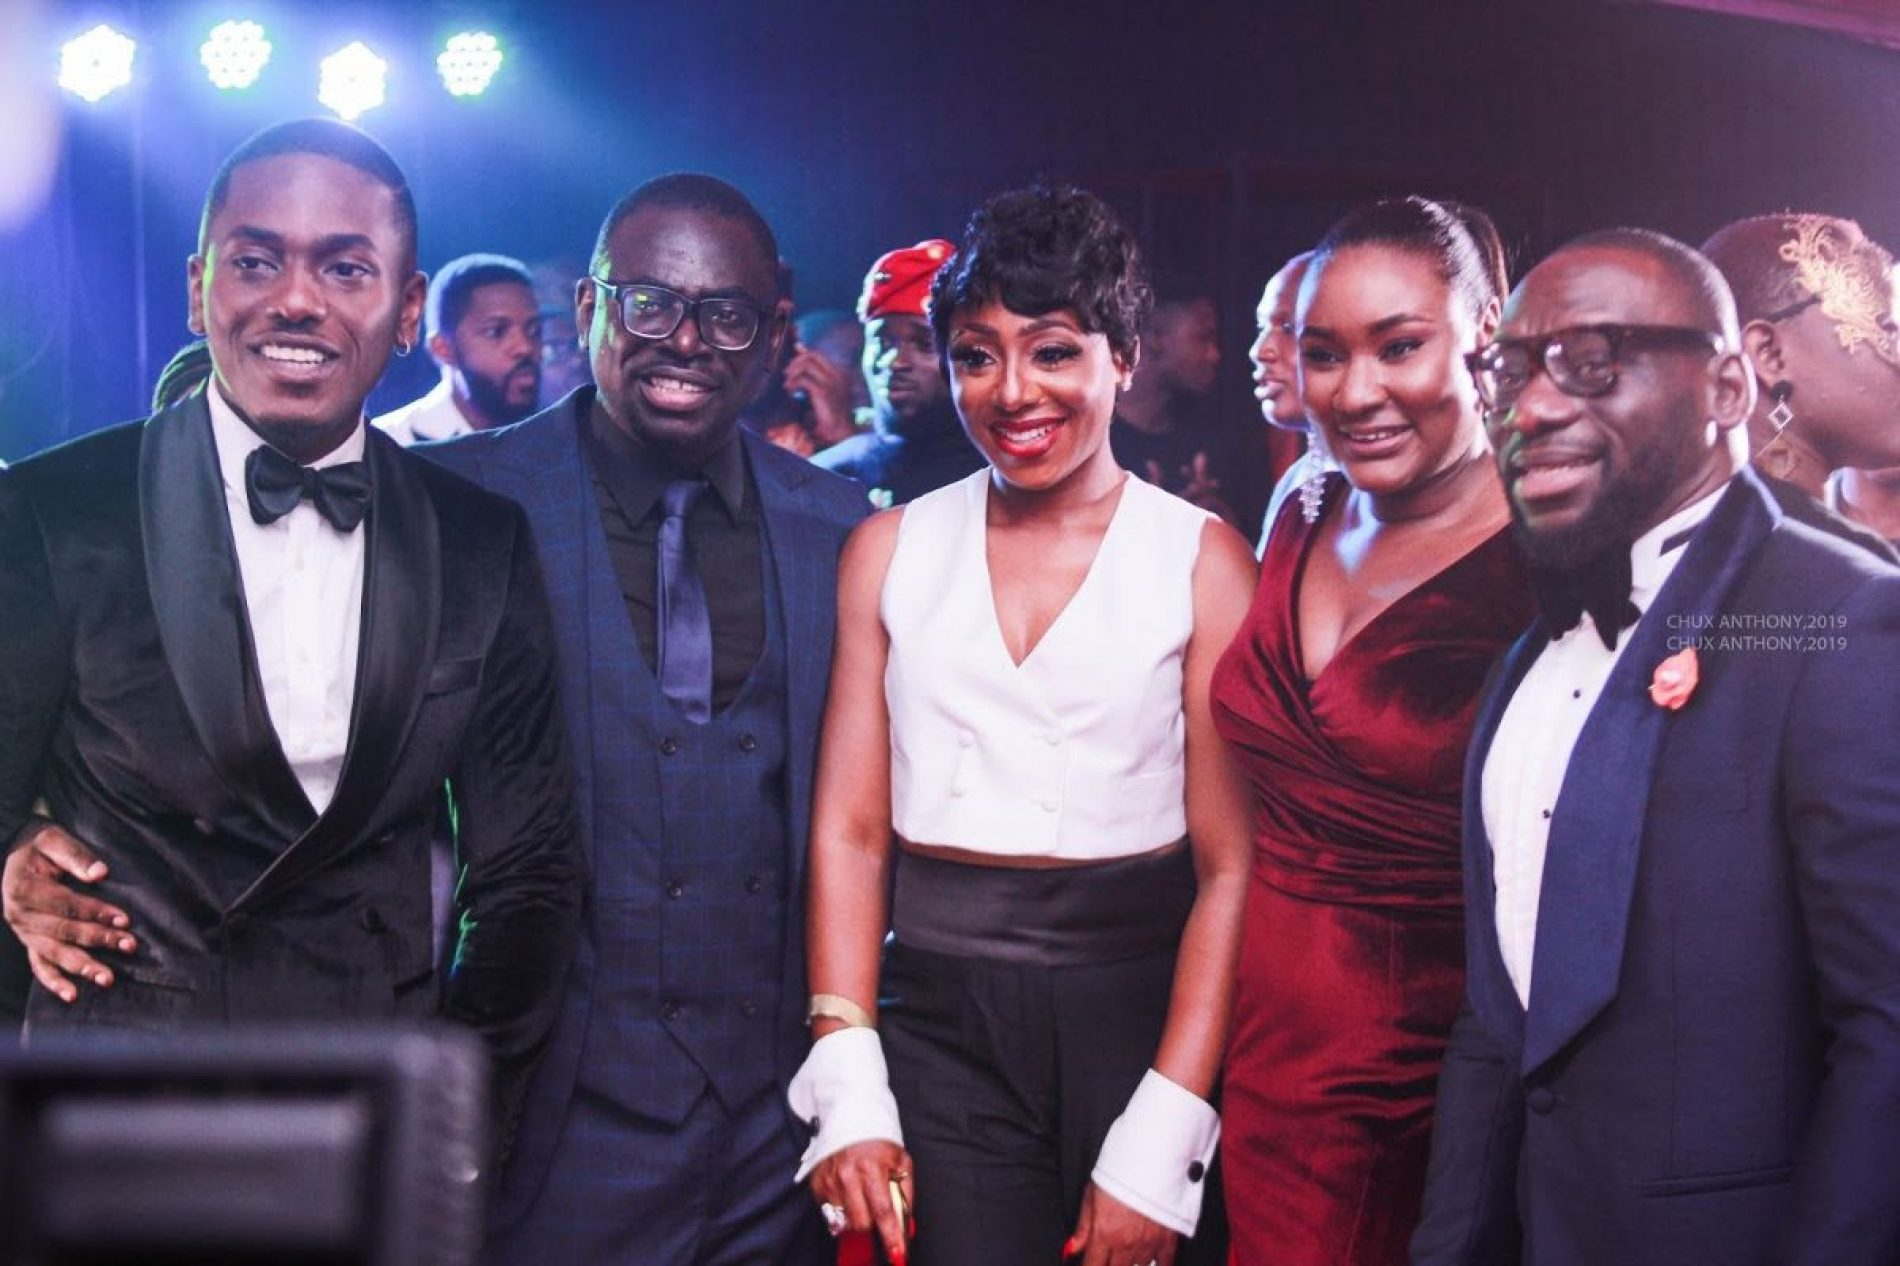 TRUST NO ONE AND BELIEVE NOTHING – BEHIND THE MYSTERY AND GLAM OF THE SET UP MOVIE PREMIERE AT FILMHOUSE CINEMA